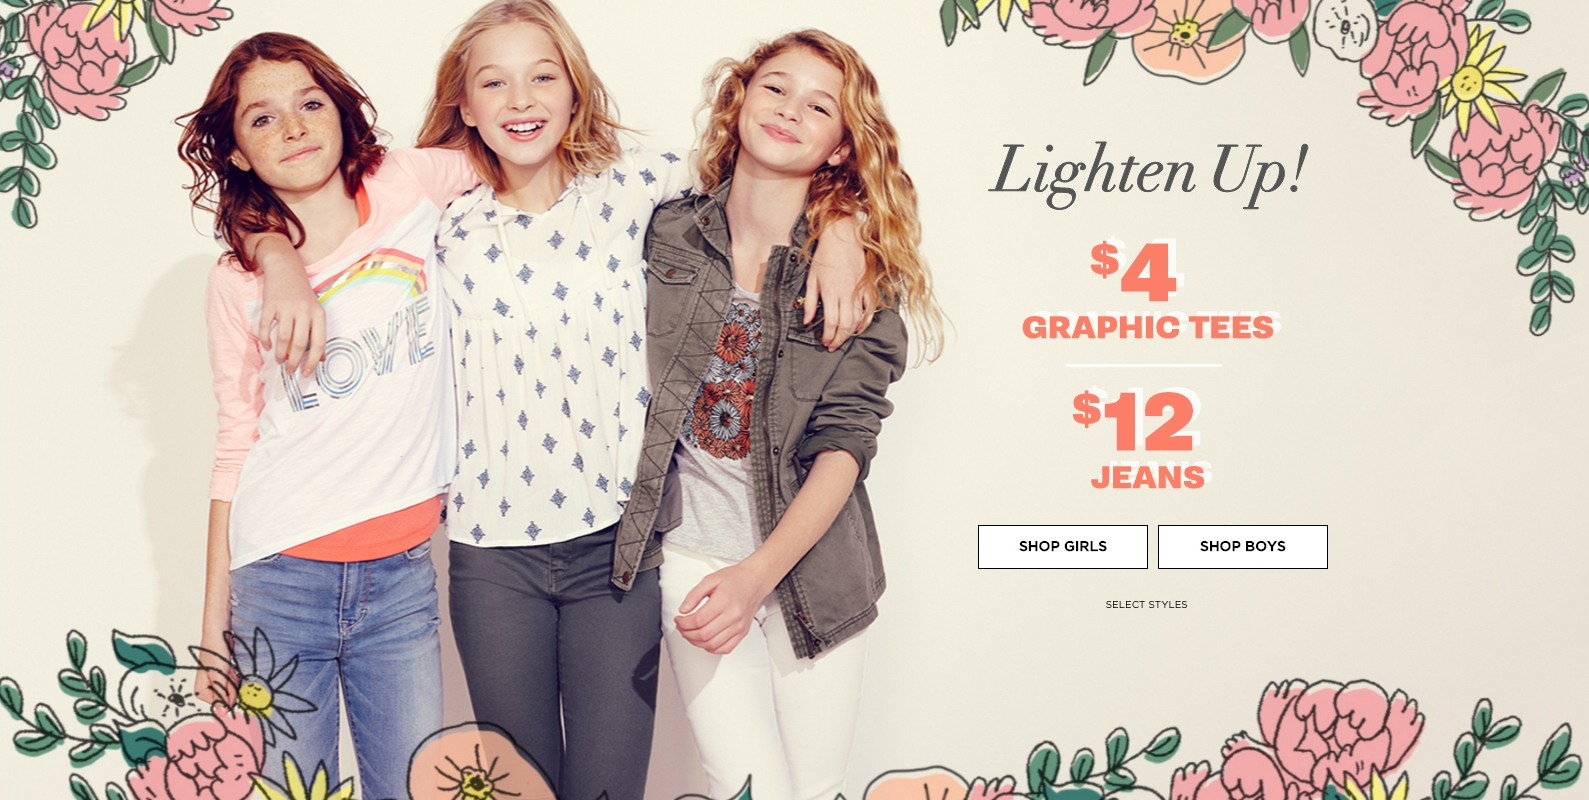 Illustrated decorative frames and banners for Aeropostale's children's line, P.S. Kids, that were displayed on their home page, 2016.